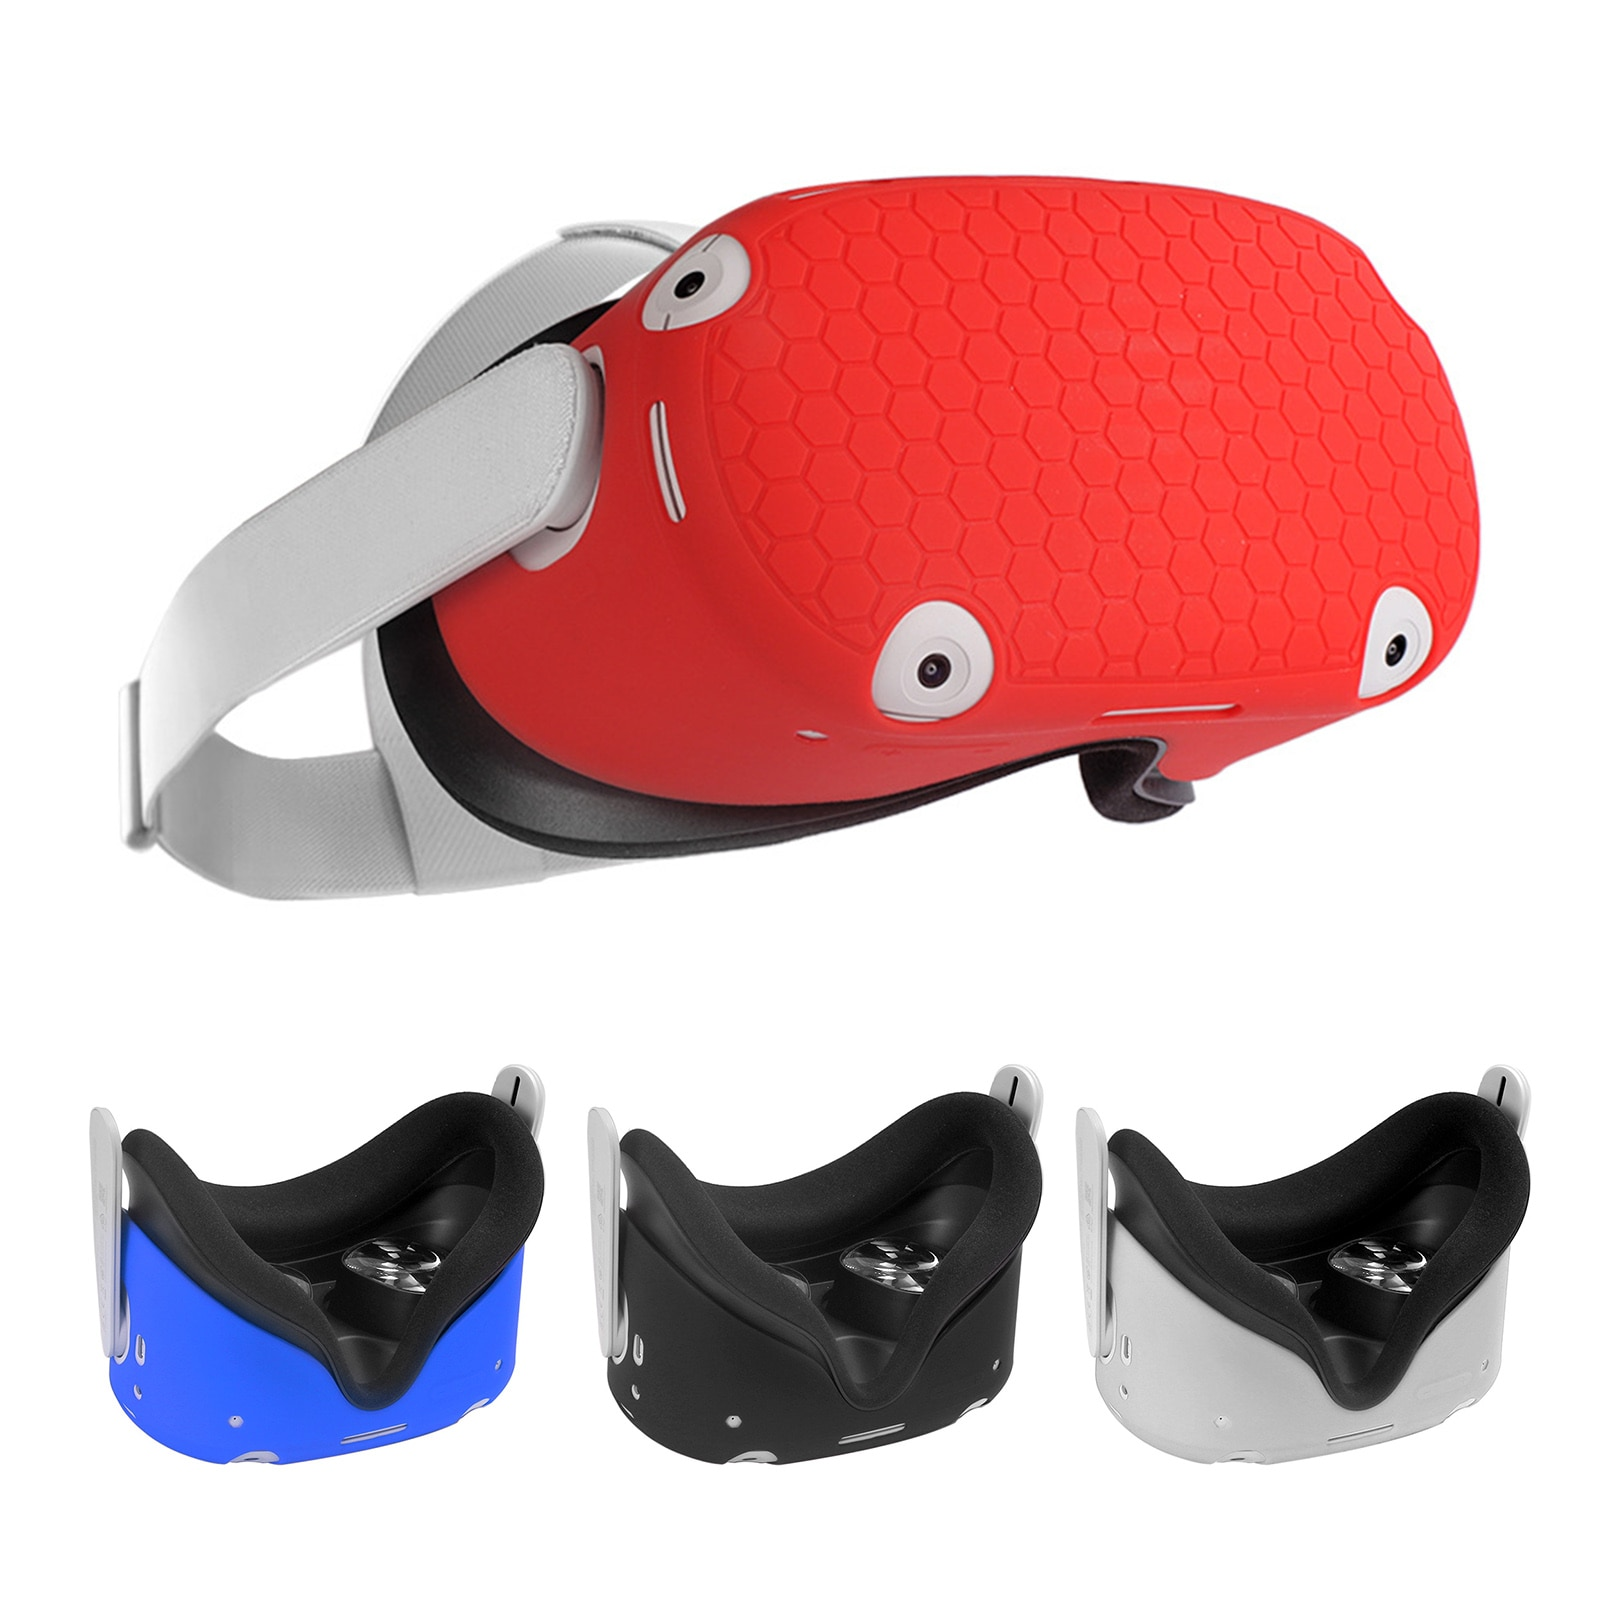 Silicone Protective Cover Shell Case For Oculus Quest 2 VR Headset Head Cover Anti-Scratches For Oculus Quest 2 VR Accessories недорого